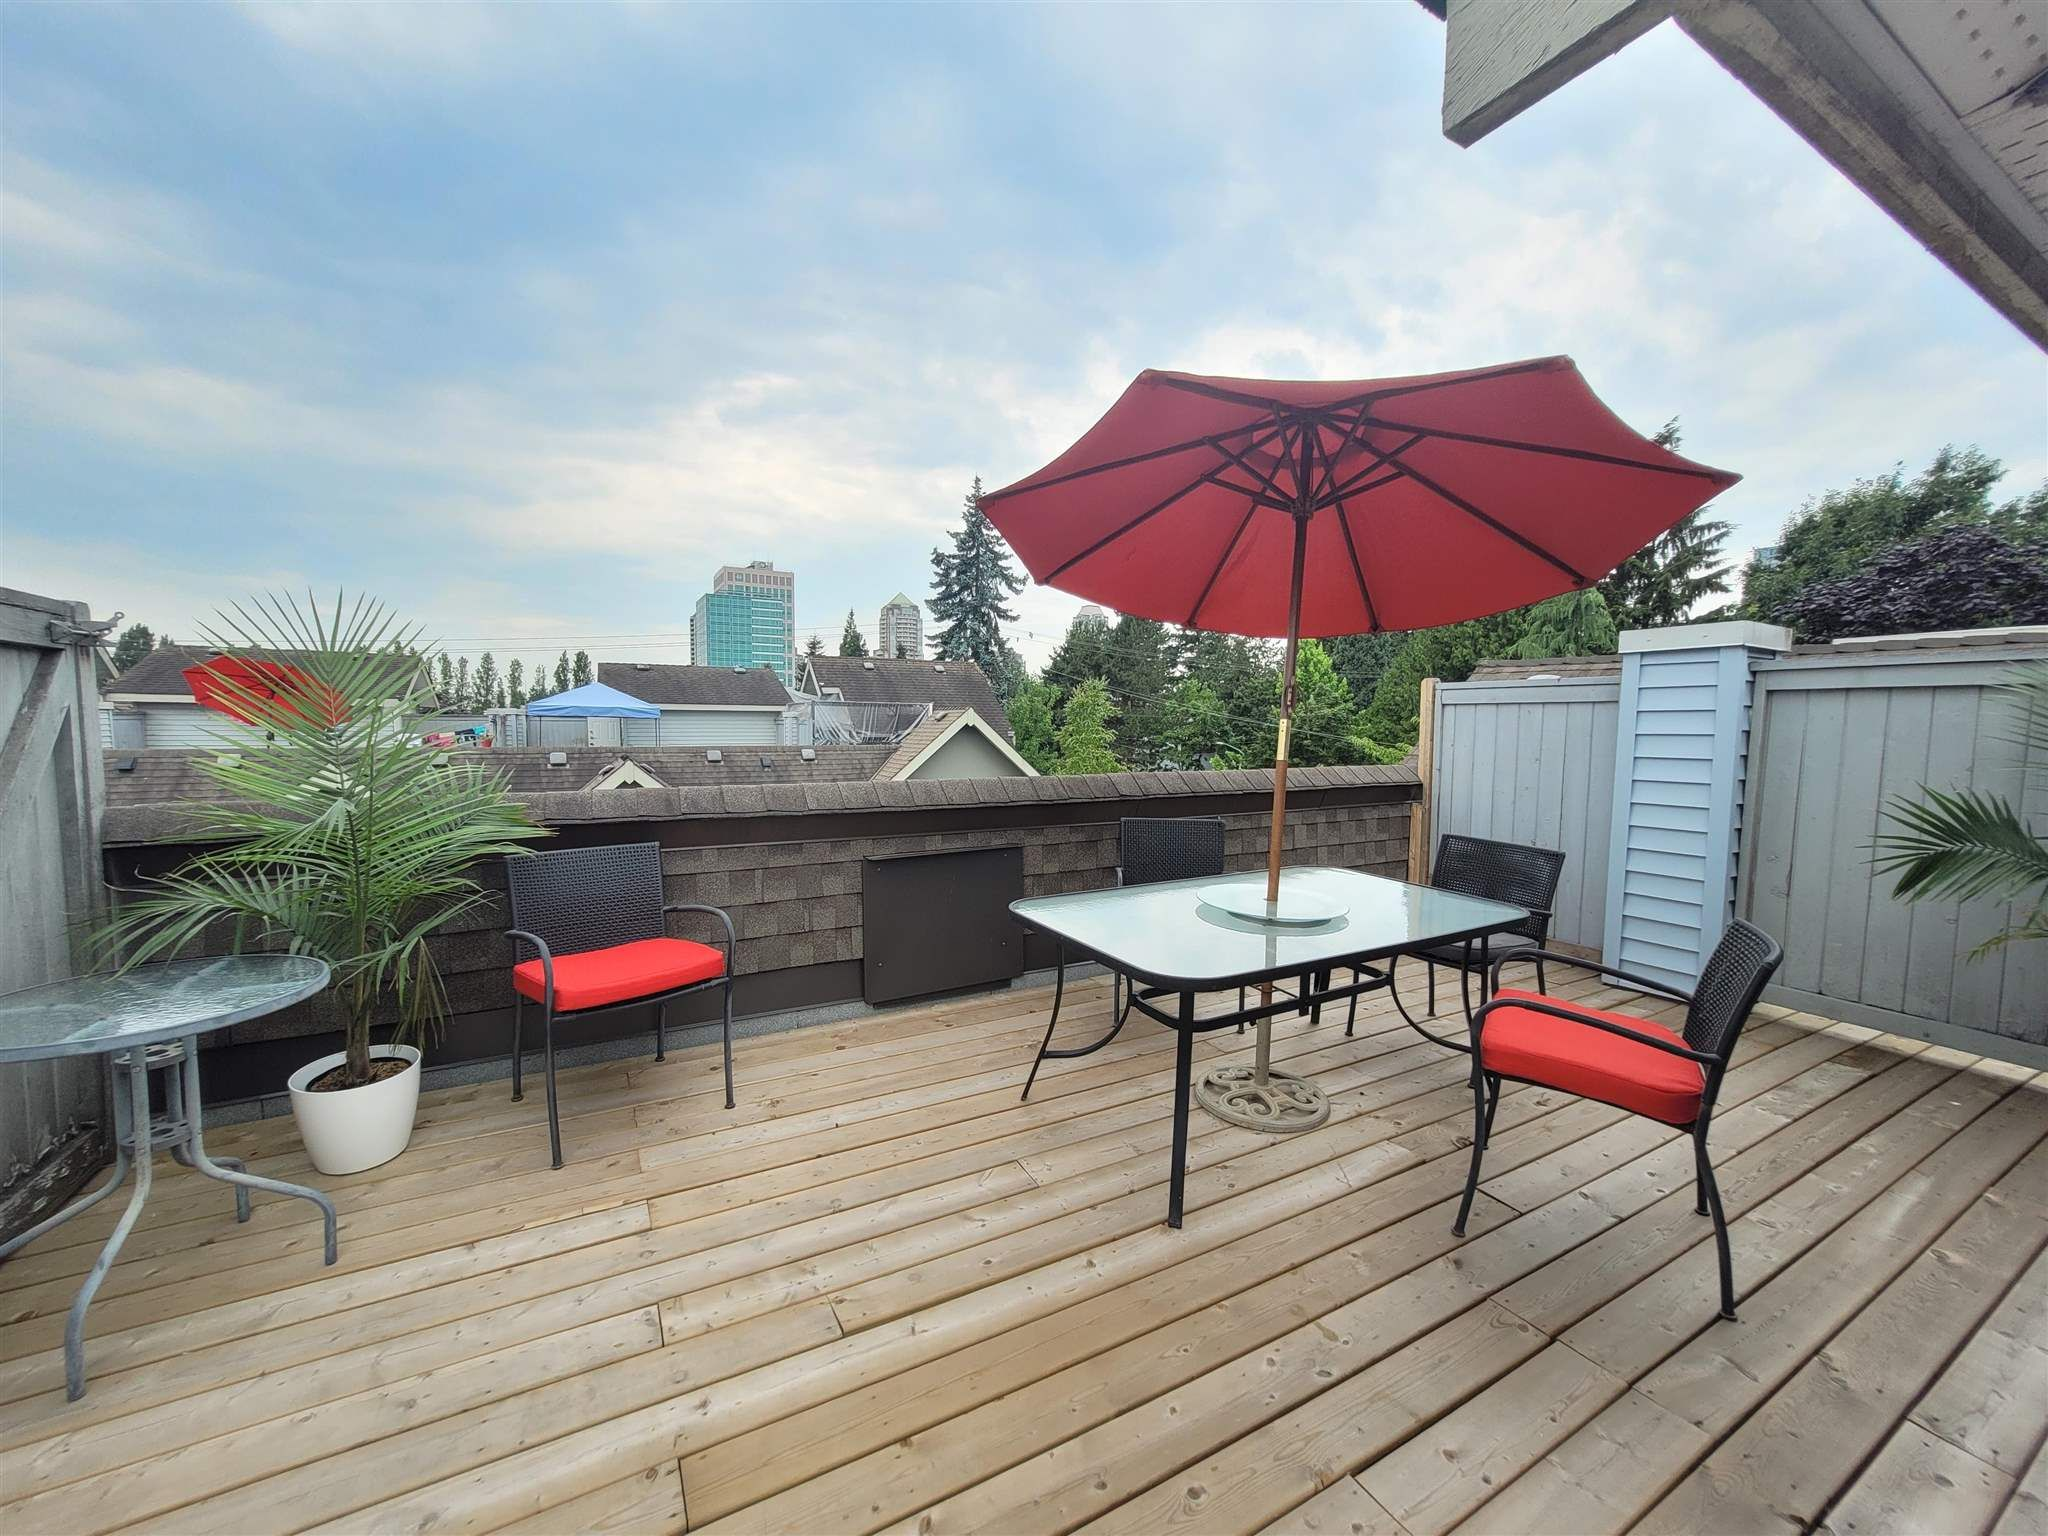 Main Photo: 51 7128 STRIDE Avenue in Burnaby: Edmonds BE Townhouse for sale (Burnaby East)  : MLS®# R2605540